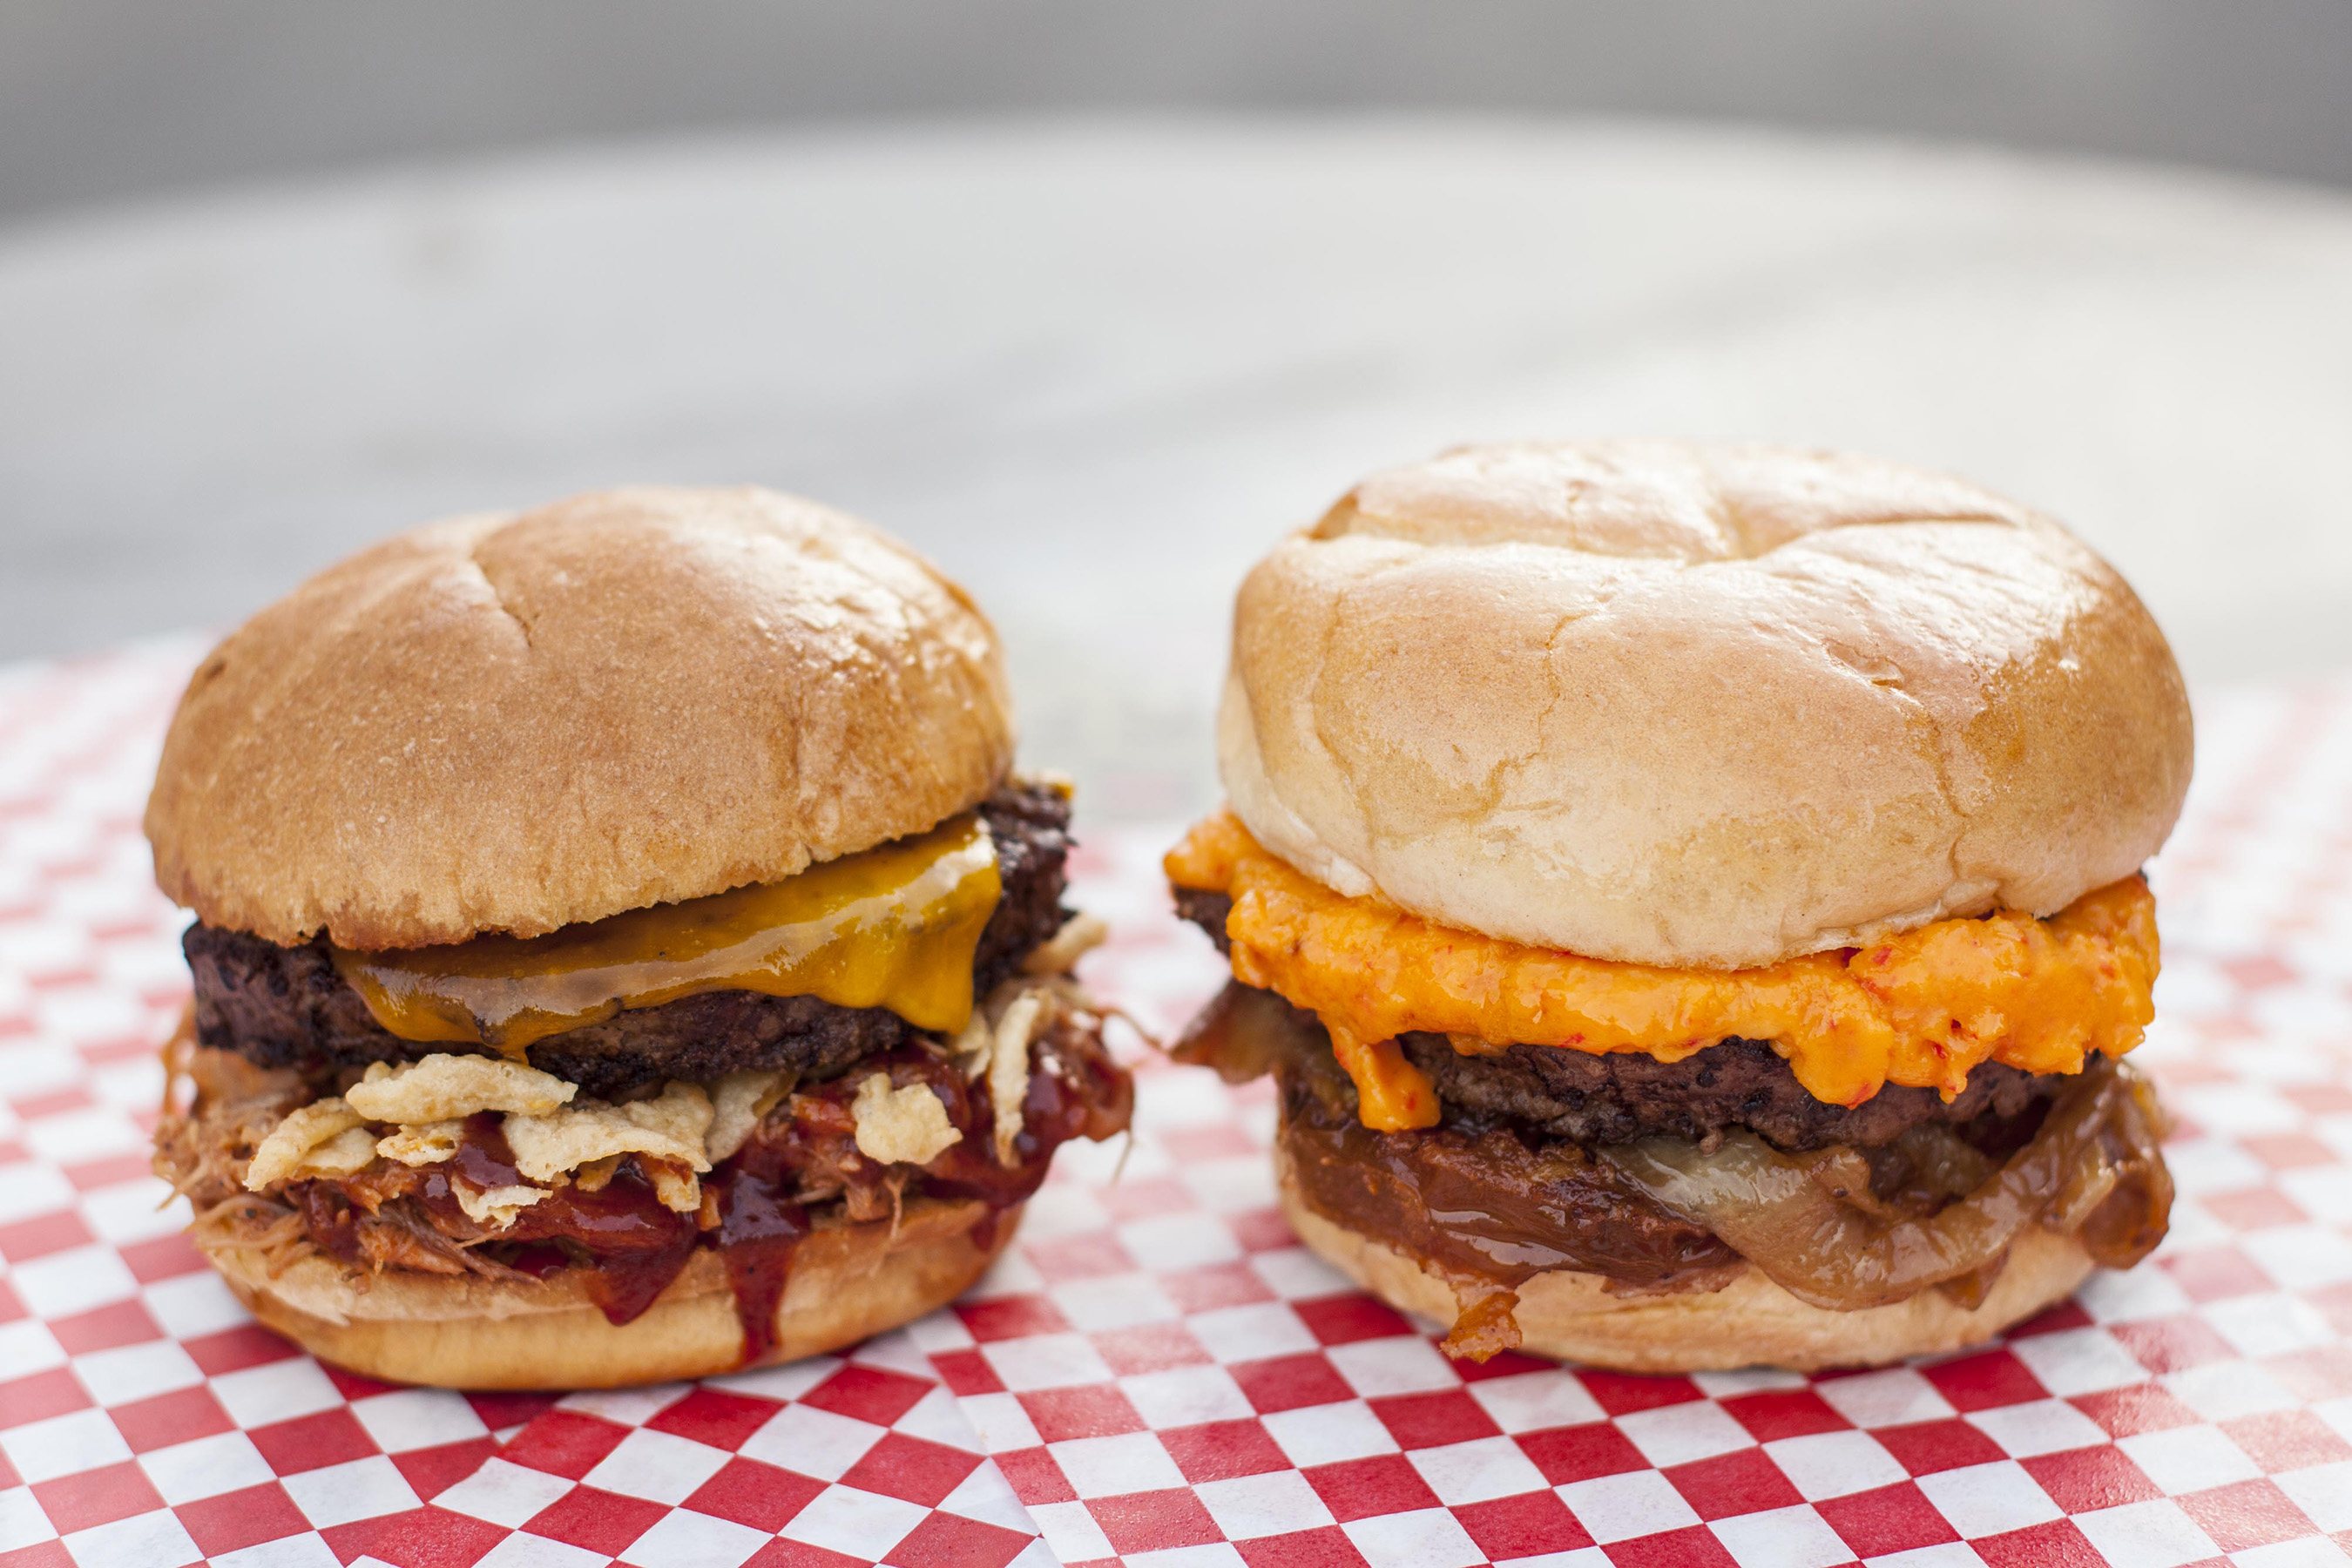 Georgia vs Oklahoma burgers - Both burgers feature a half-pound burger, but the Oklahoma burger features American cheese, crispy onions, and BBQ pulled pork, while the Georgia burger is topped with pimento cheese, fried green tomatoes and grilled onions.